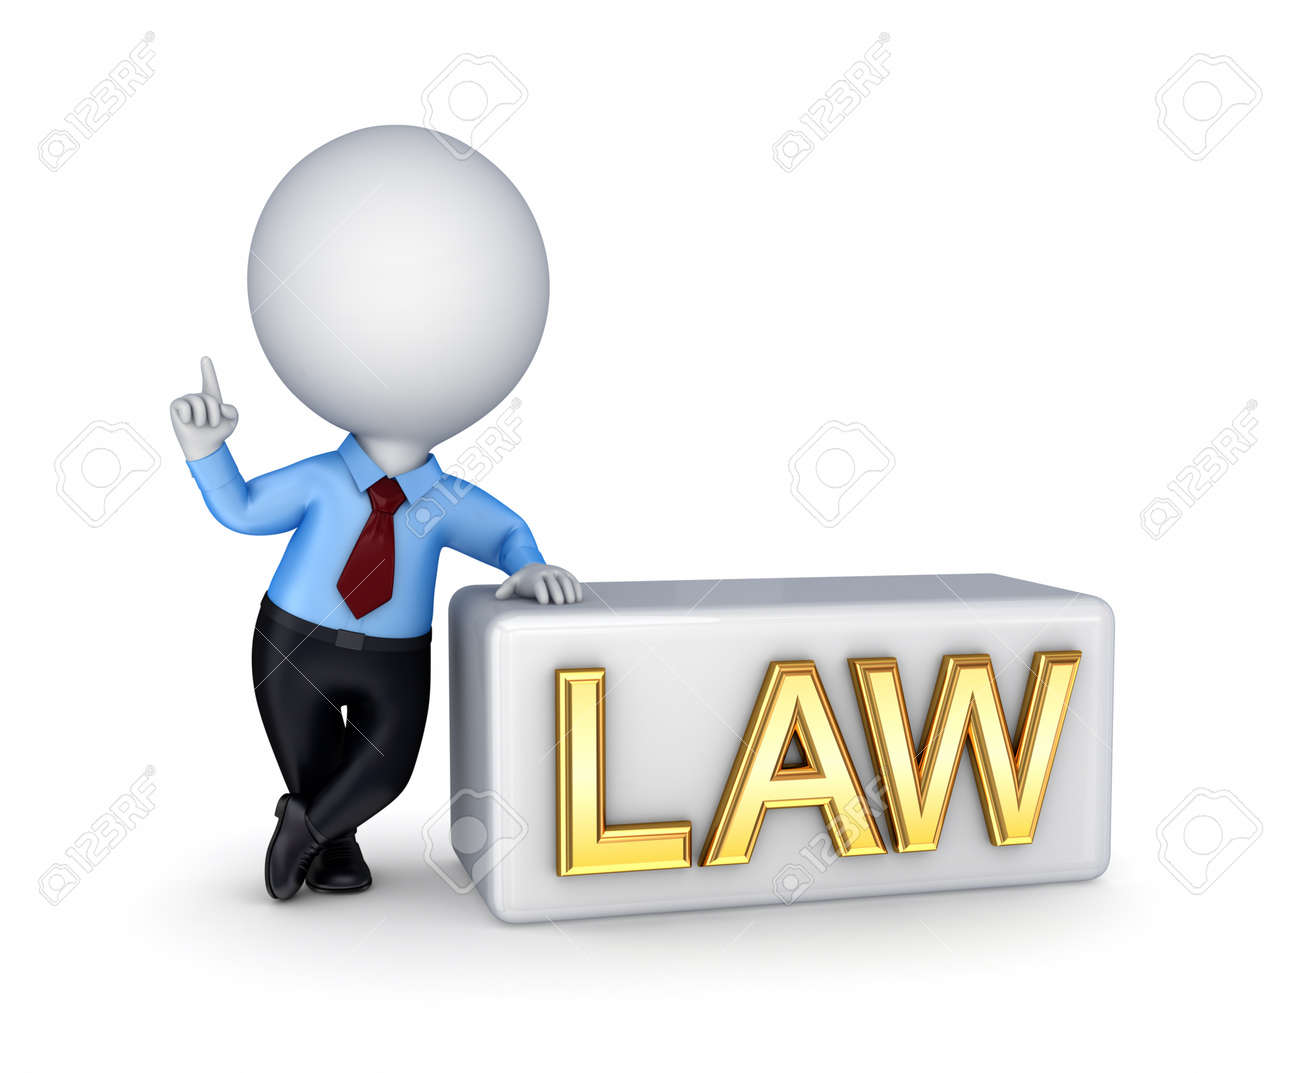 LAW concept.Isolated on white background. 3d rendered. Stock Photo - 12222716